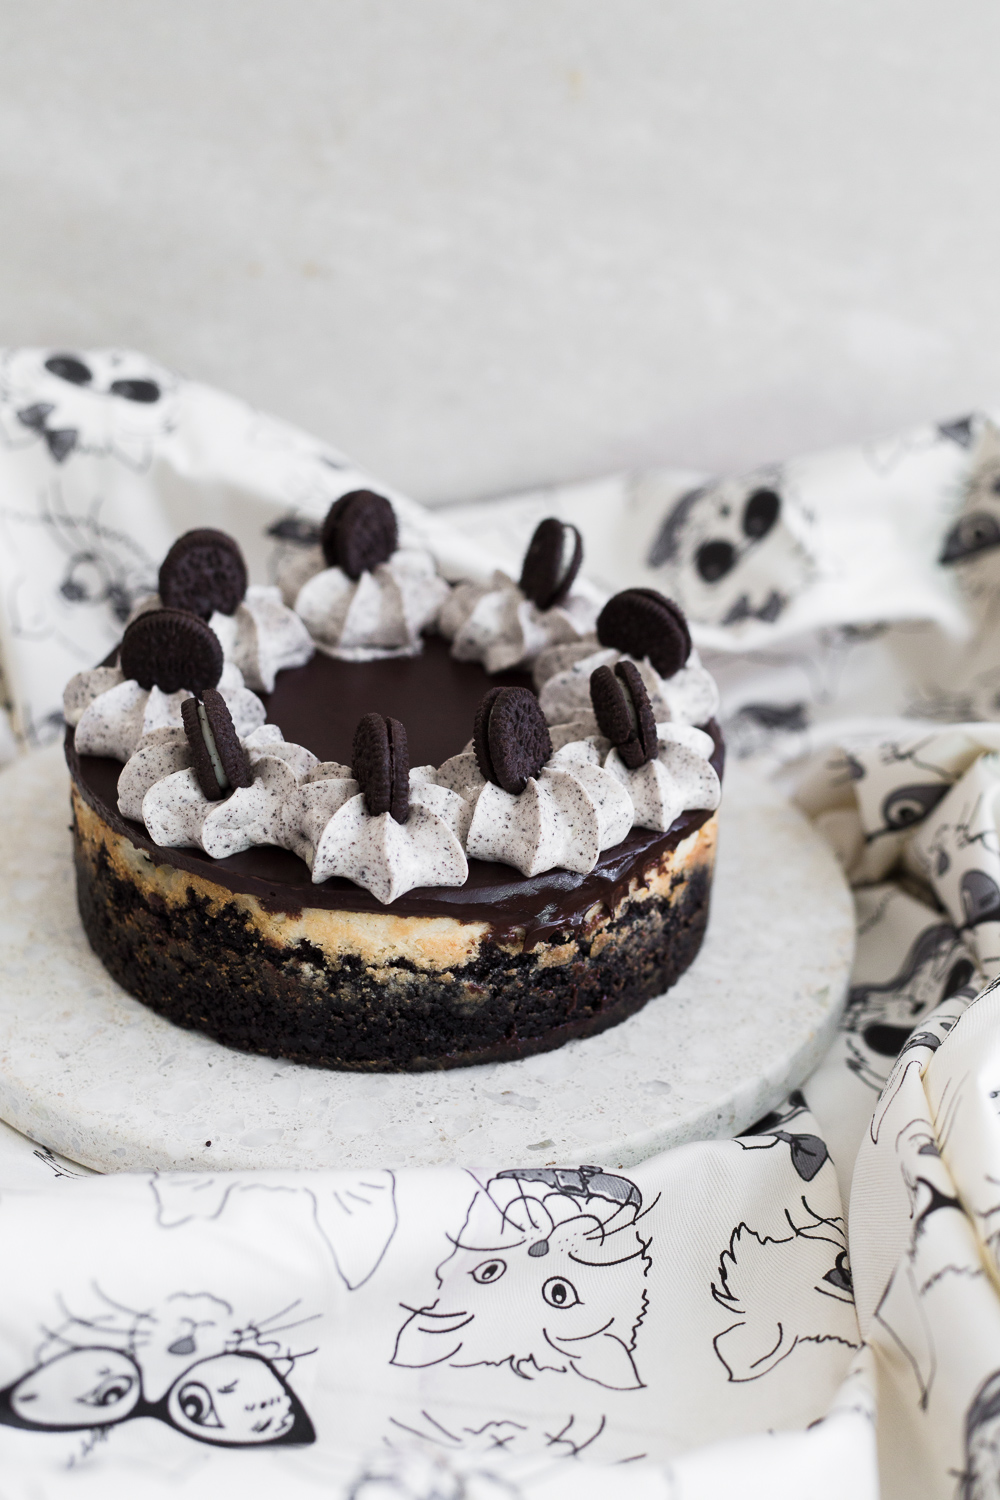 The Ultimate Baked Vegan Cheesecake recipe, so good you'll even fool the omnivores! Easy to make, low in cost and 100% Nut Free/Dairy Free. #dairyfree #bakedcheesecake #vegancheesecake #cheesecake #nutfree #oreocheesecake #veganrecipes #veganbakedcheesecake #simple